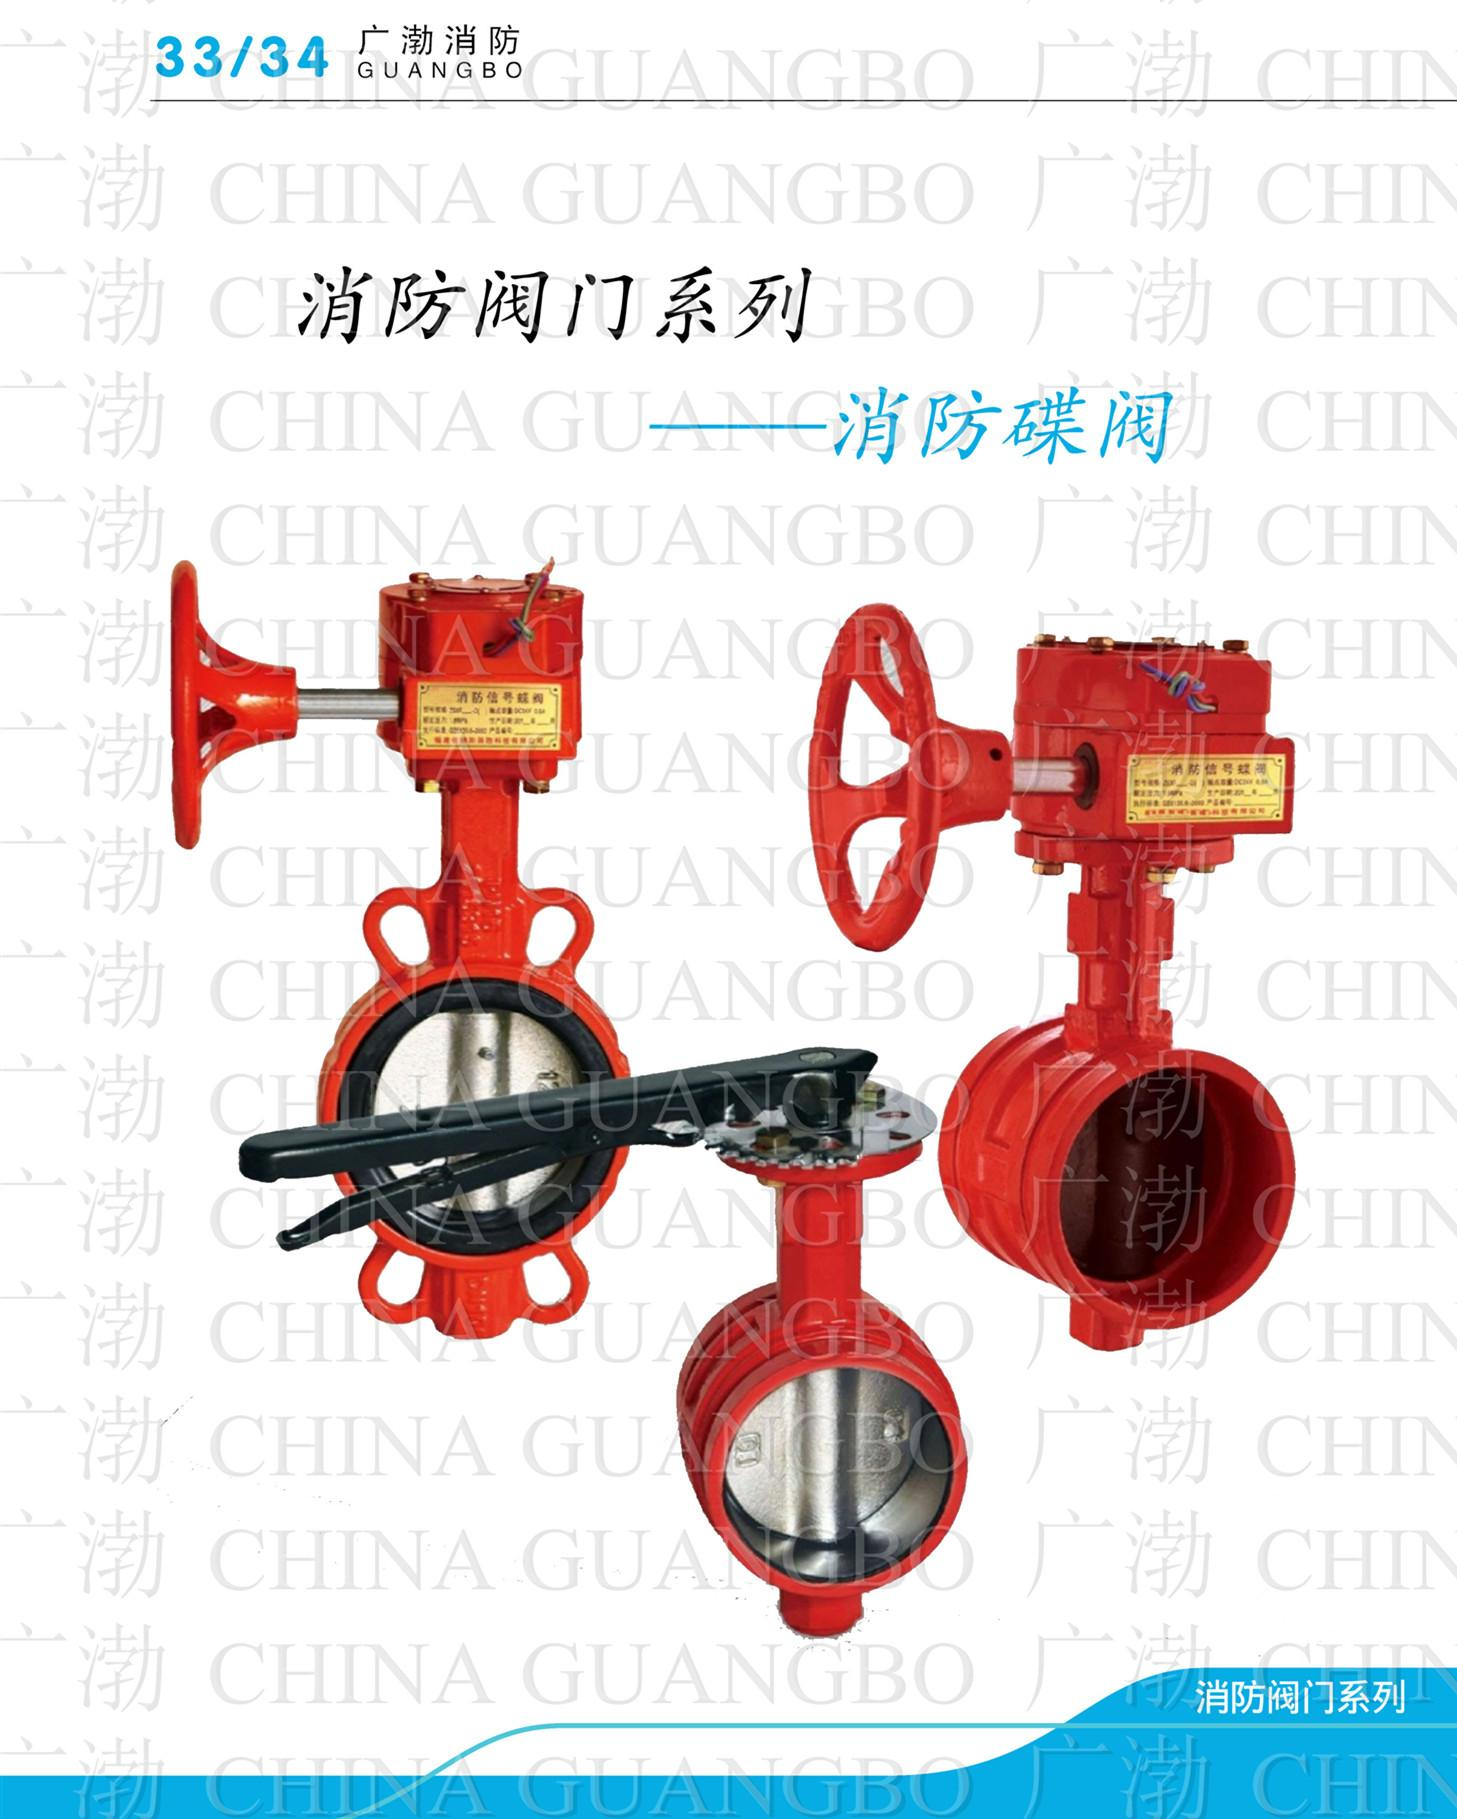 Fire Butterfly Valve Wafer Type Groove Type China Fujian Gunagbo Brand 1